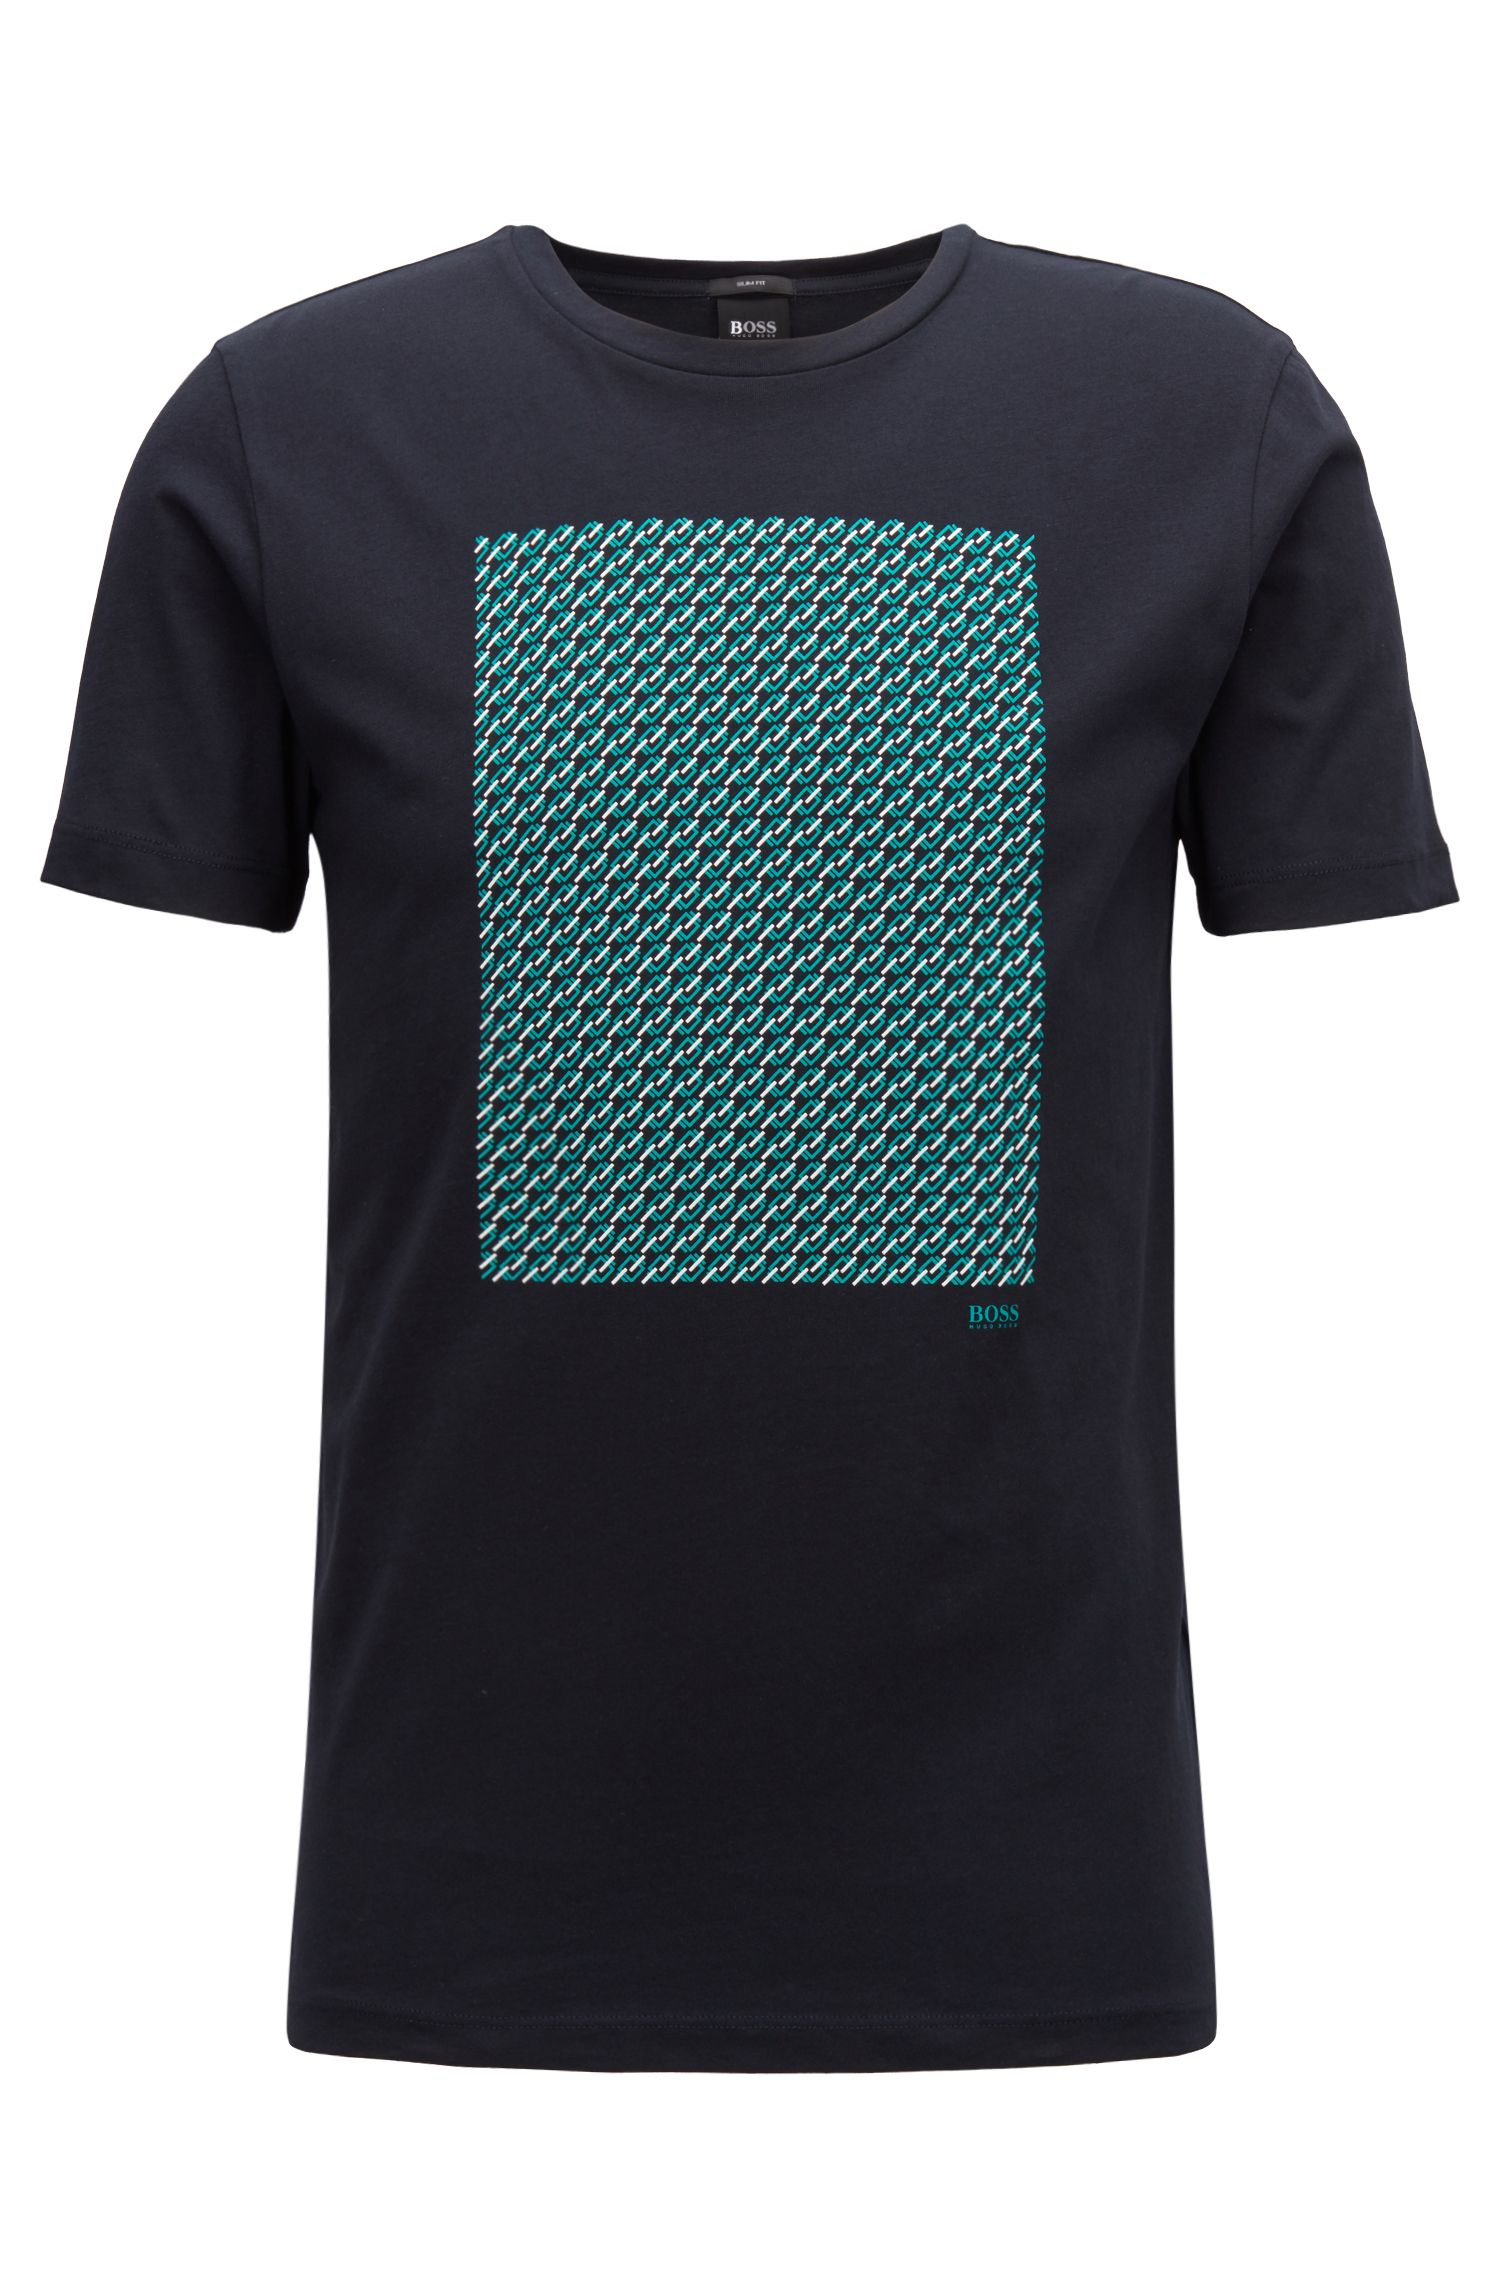 T-Shirt aus Single Jersey mit Print, Blau